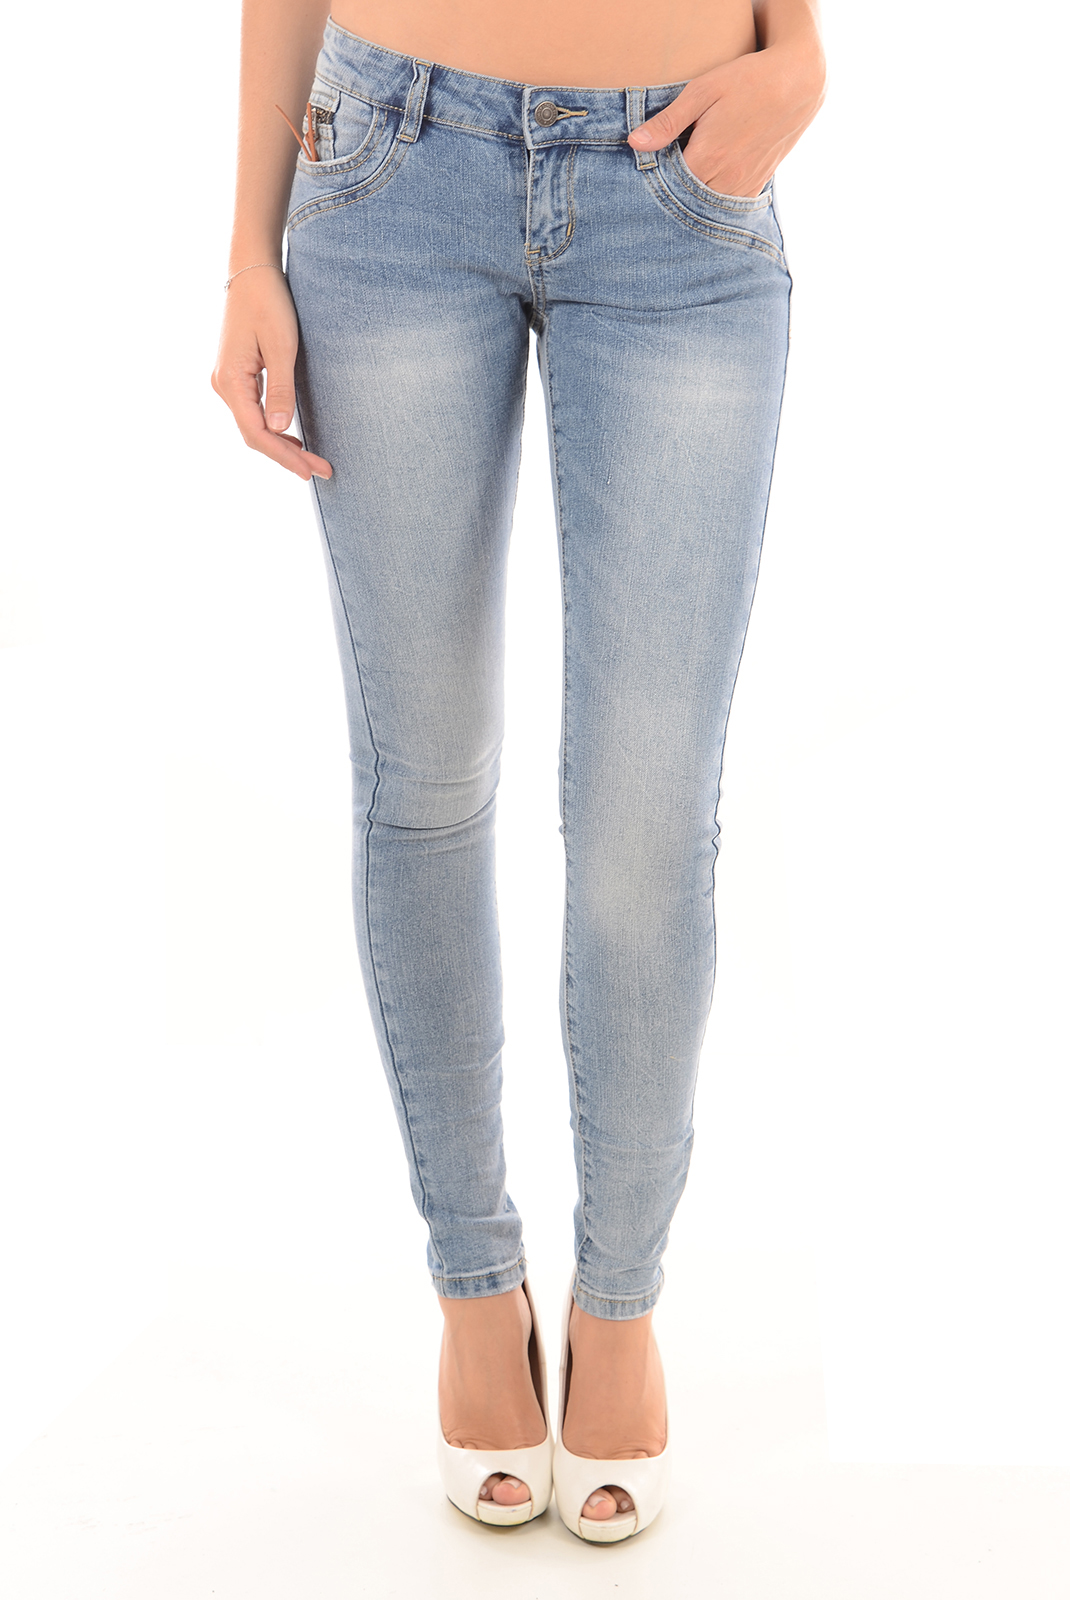 Jeans   Vero moda FIVE LW SLIM ZIP GU332 LIGHT BLUE DENIM